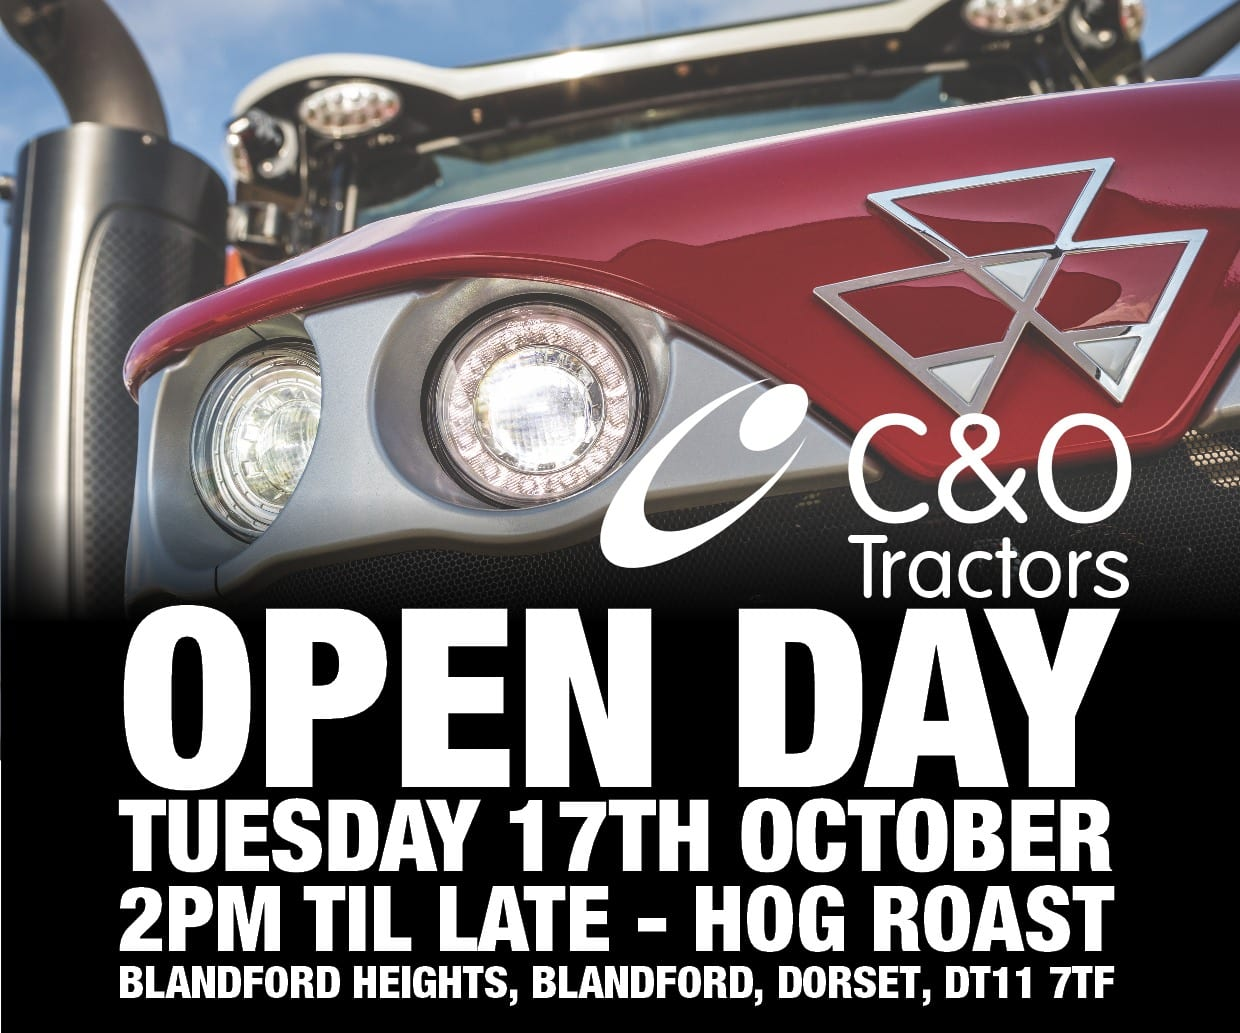 C&O Tractors Open Day 2017